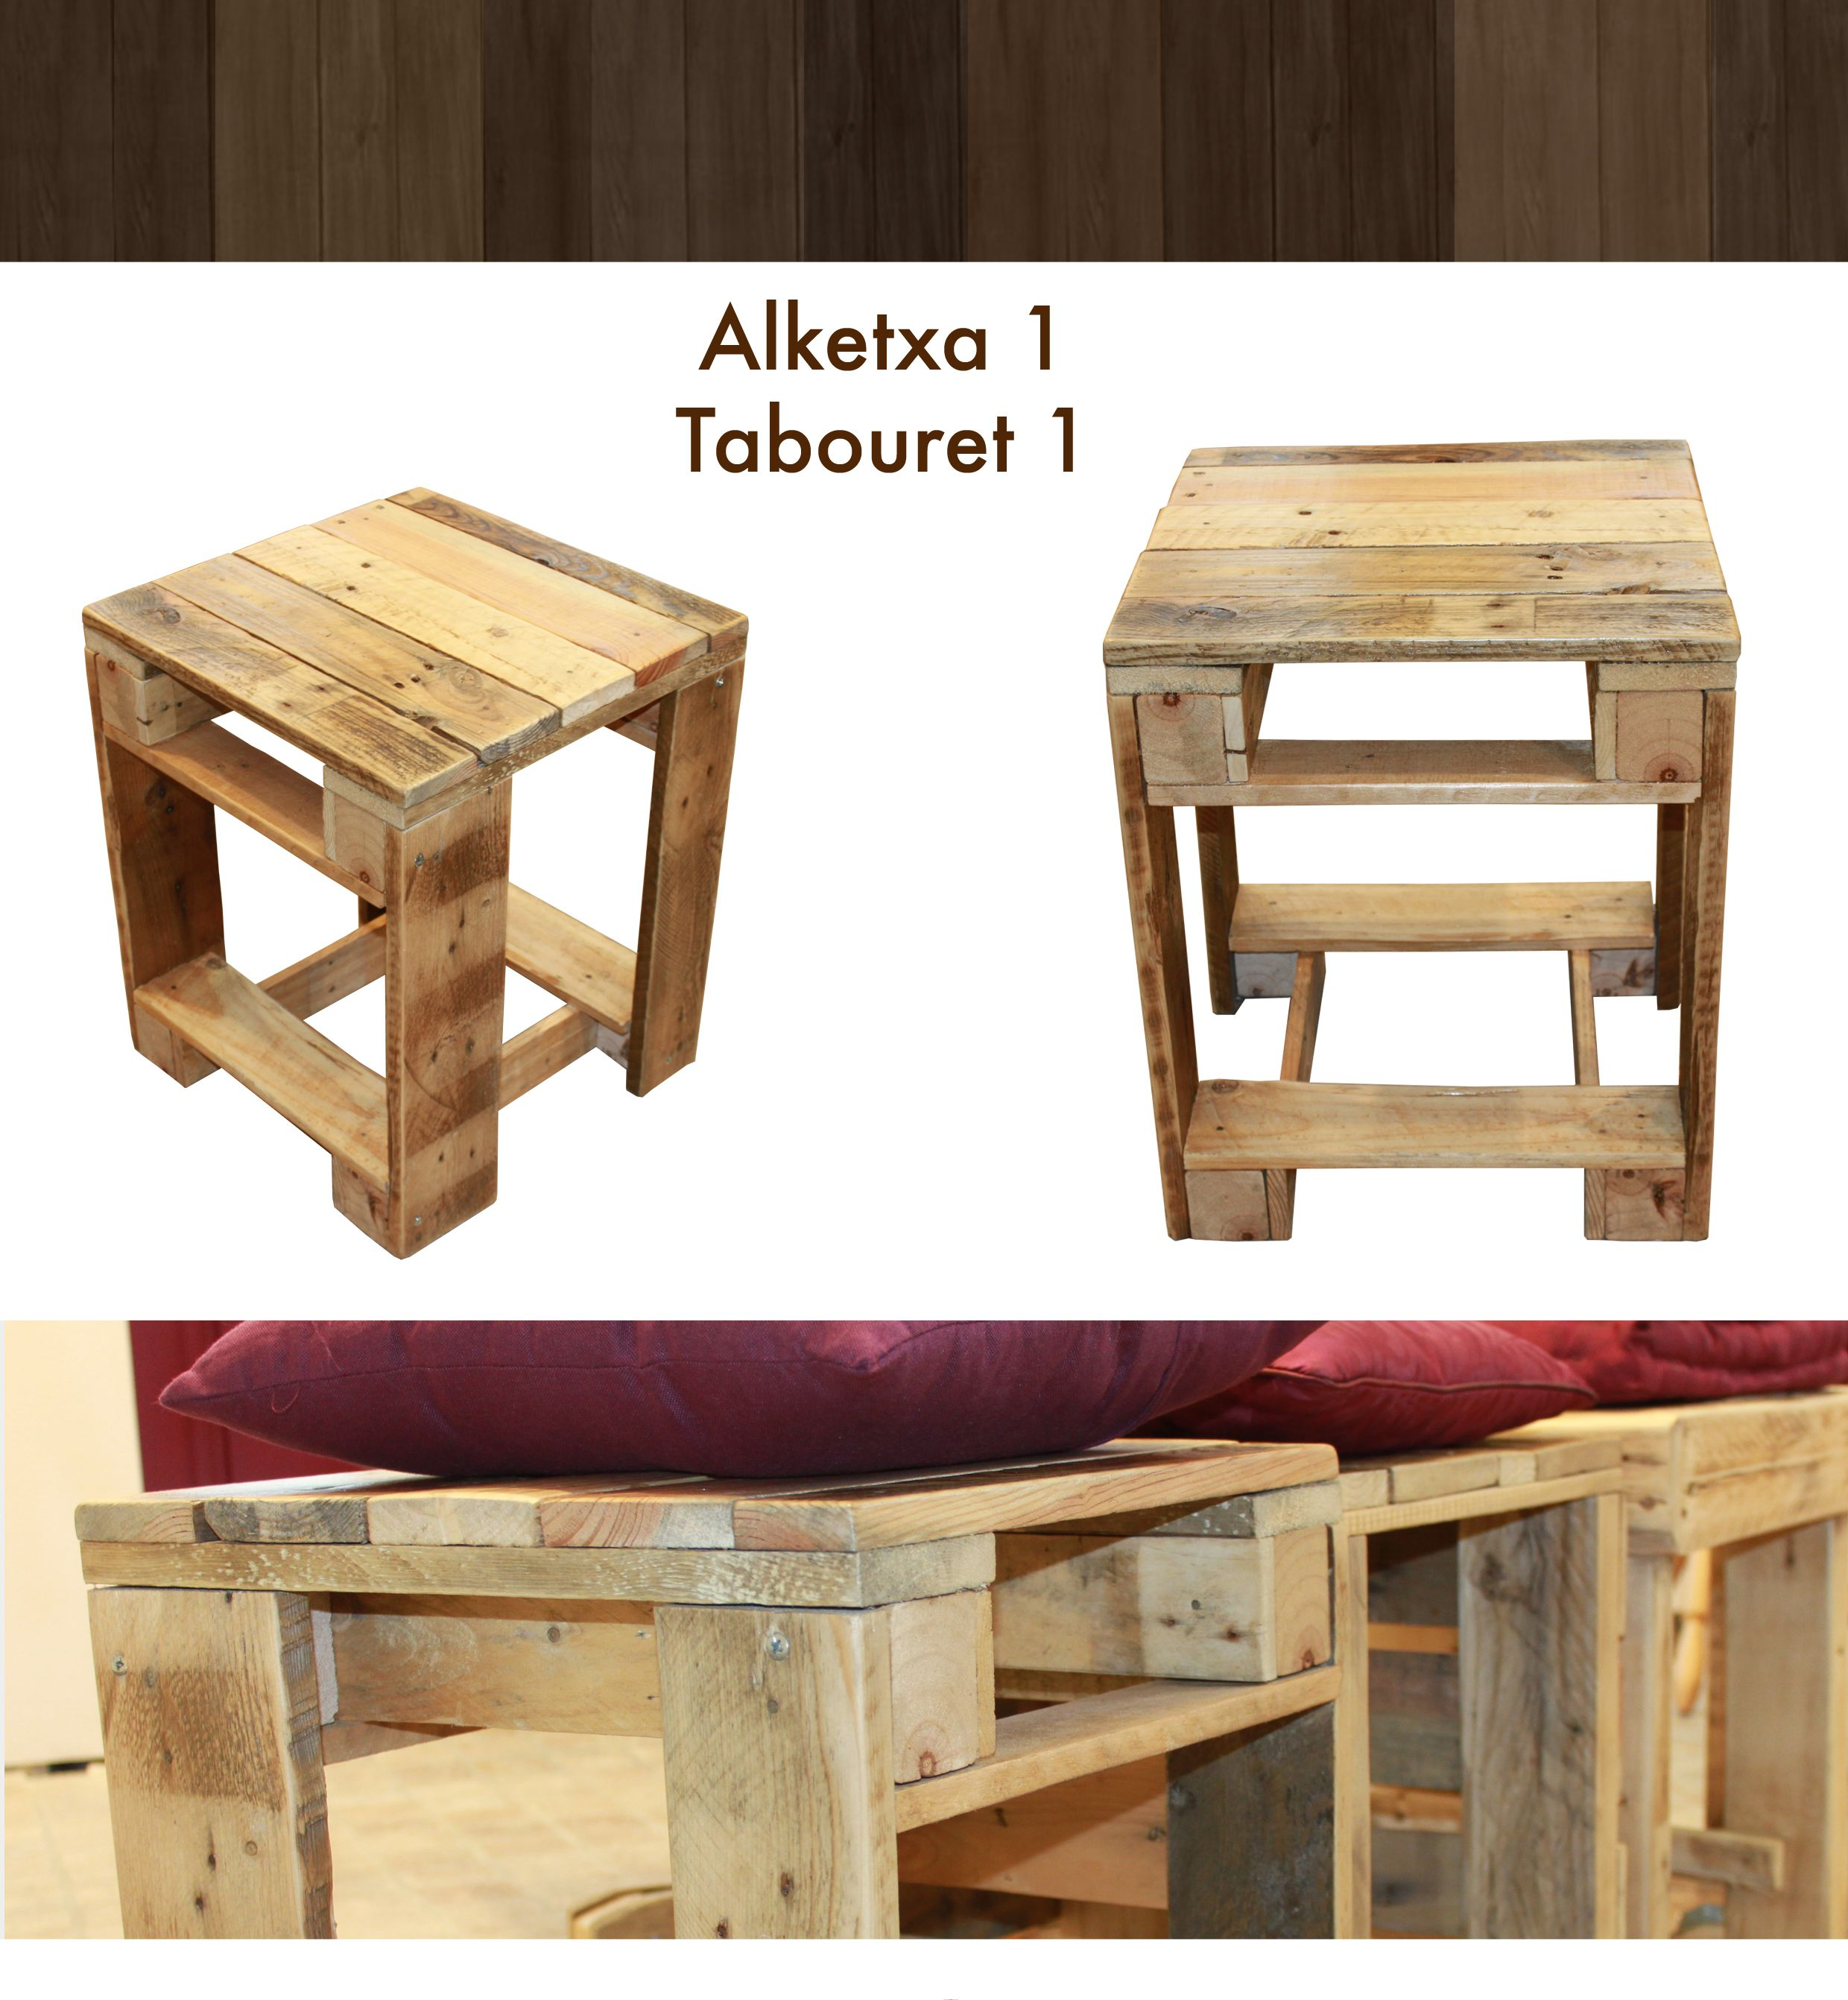 petit tabouret en bois de palette les meubles en palette de martxuka pinterest tables. Black Bedroom Furniture Sets. Home Design Ideas